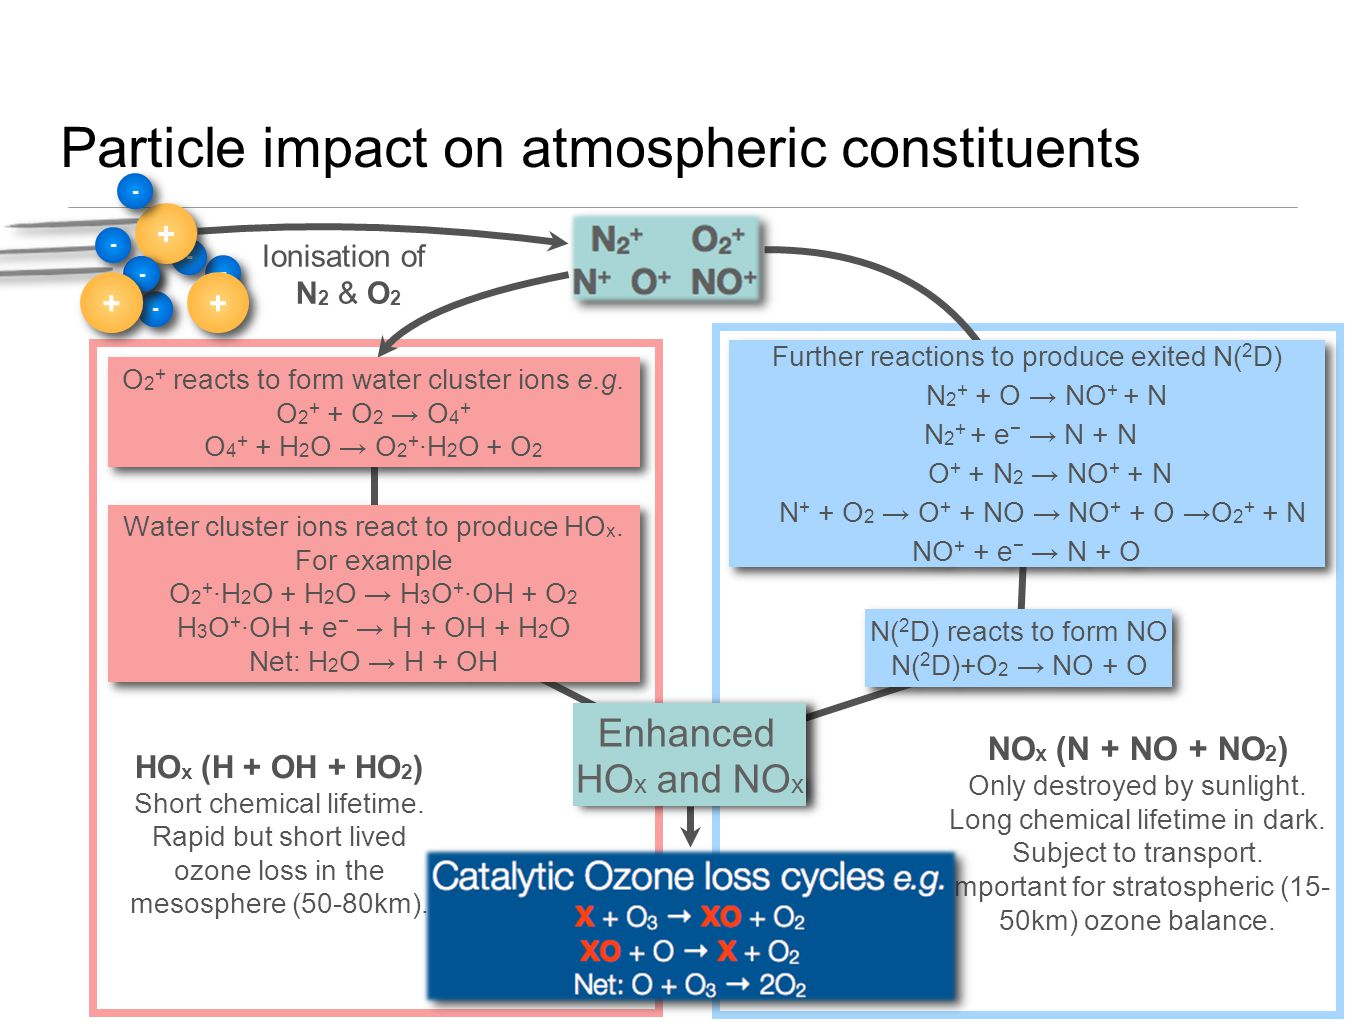 Particle impact on atmospheric constituents - - - - - - - - + + - - - - Further reactions to produce exited N( 2 D) N 2 + + O → NO + + N N 2 + + e − → N + N O + + N 2 → NO + + N N + + O 2 → O + + NO → NO + + O →O 2 + + N NO + + e − → N + O Further reactions to produce exited N( 2 D) N 2 + + O → NO + + N N 2 + + e − → N + N O + + N 2 → NO + + N N + + O 2 → O + + NO → NO + + O →O 2 + + N NO + + e − → N + O Ionisation of N 2 & O 2 O 2 + reacts to form water cluster ions e.g.